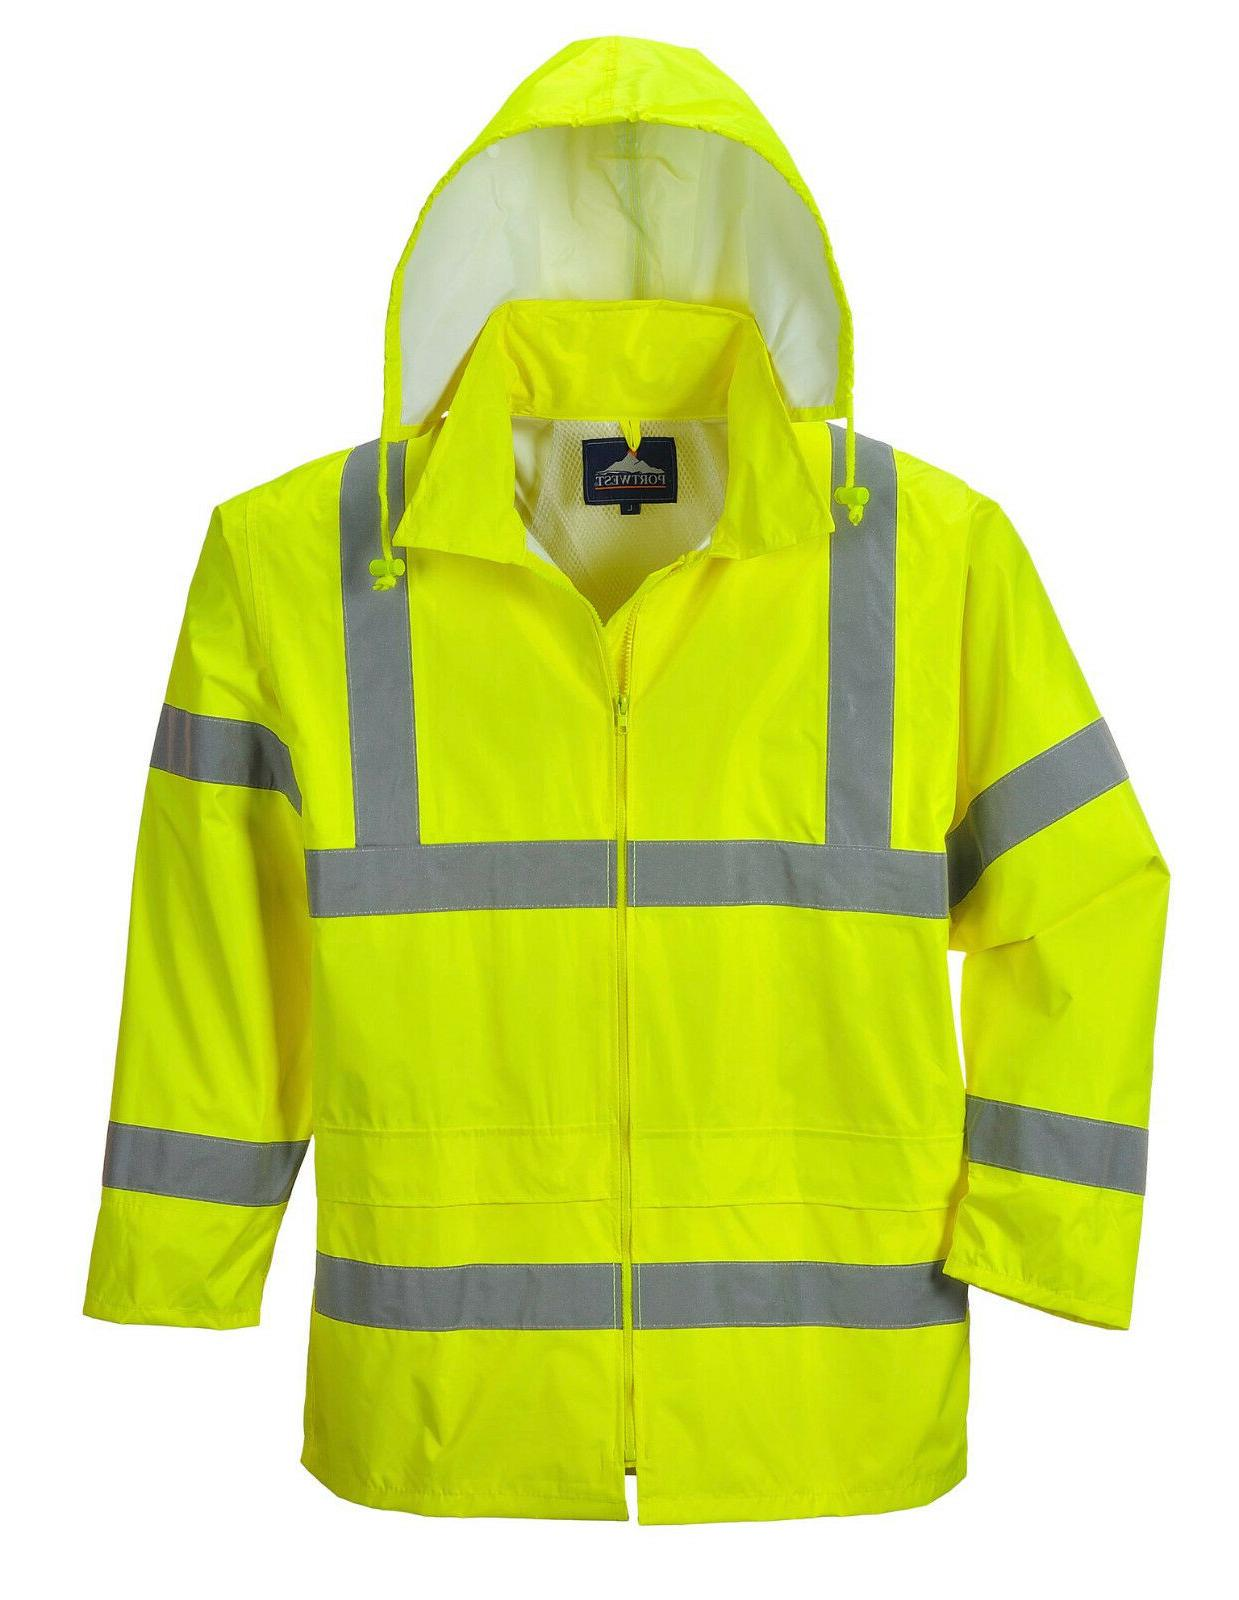 Safety Green Raincoat w